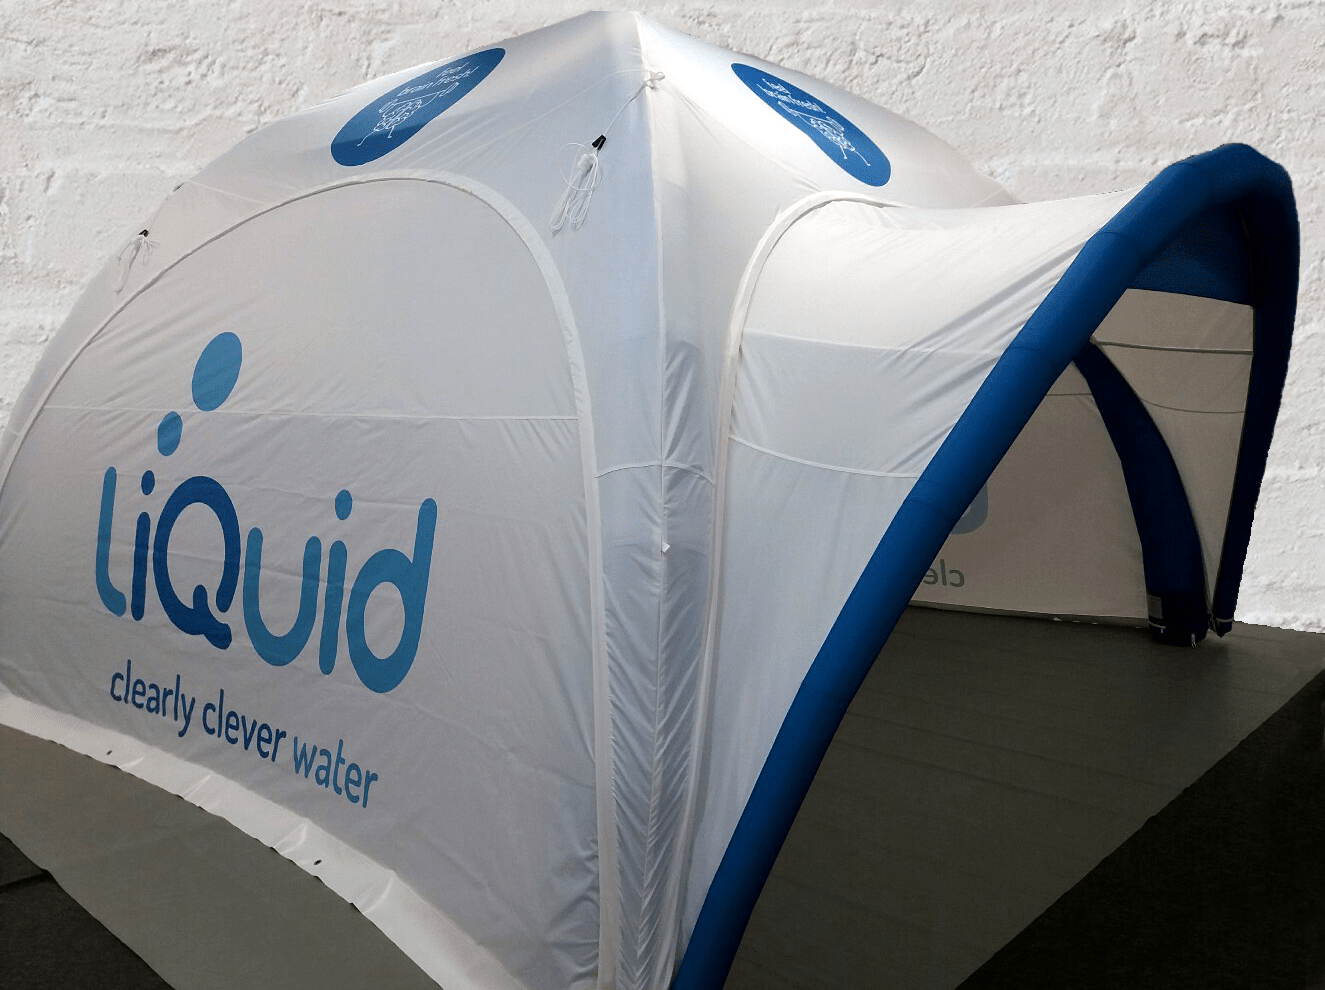 Thinknblink choose the 4mx 4m Axion Square Event Tent for their client liQuid.